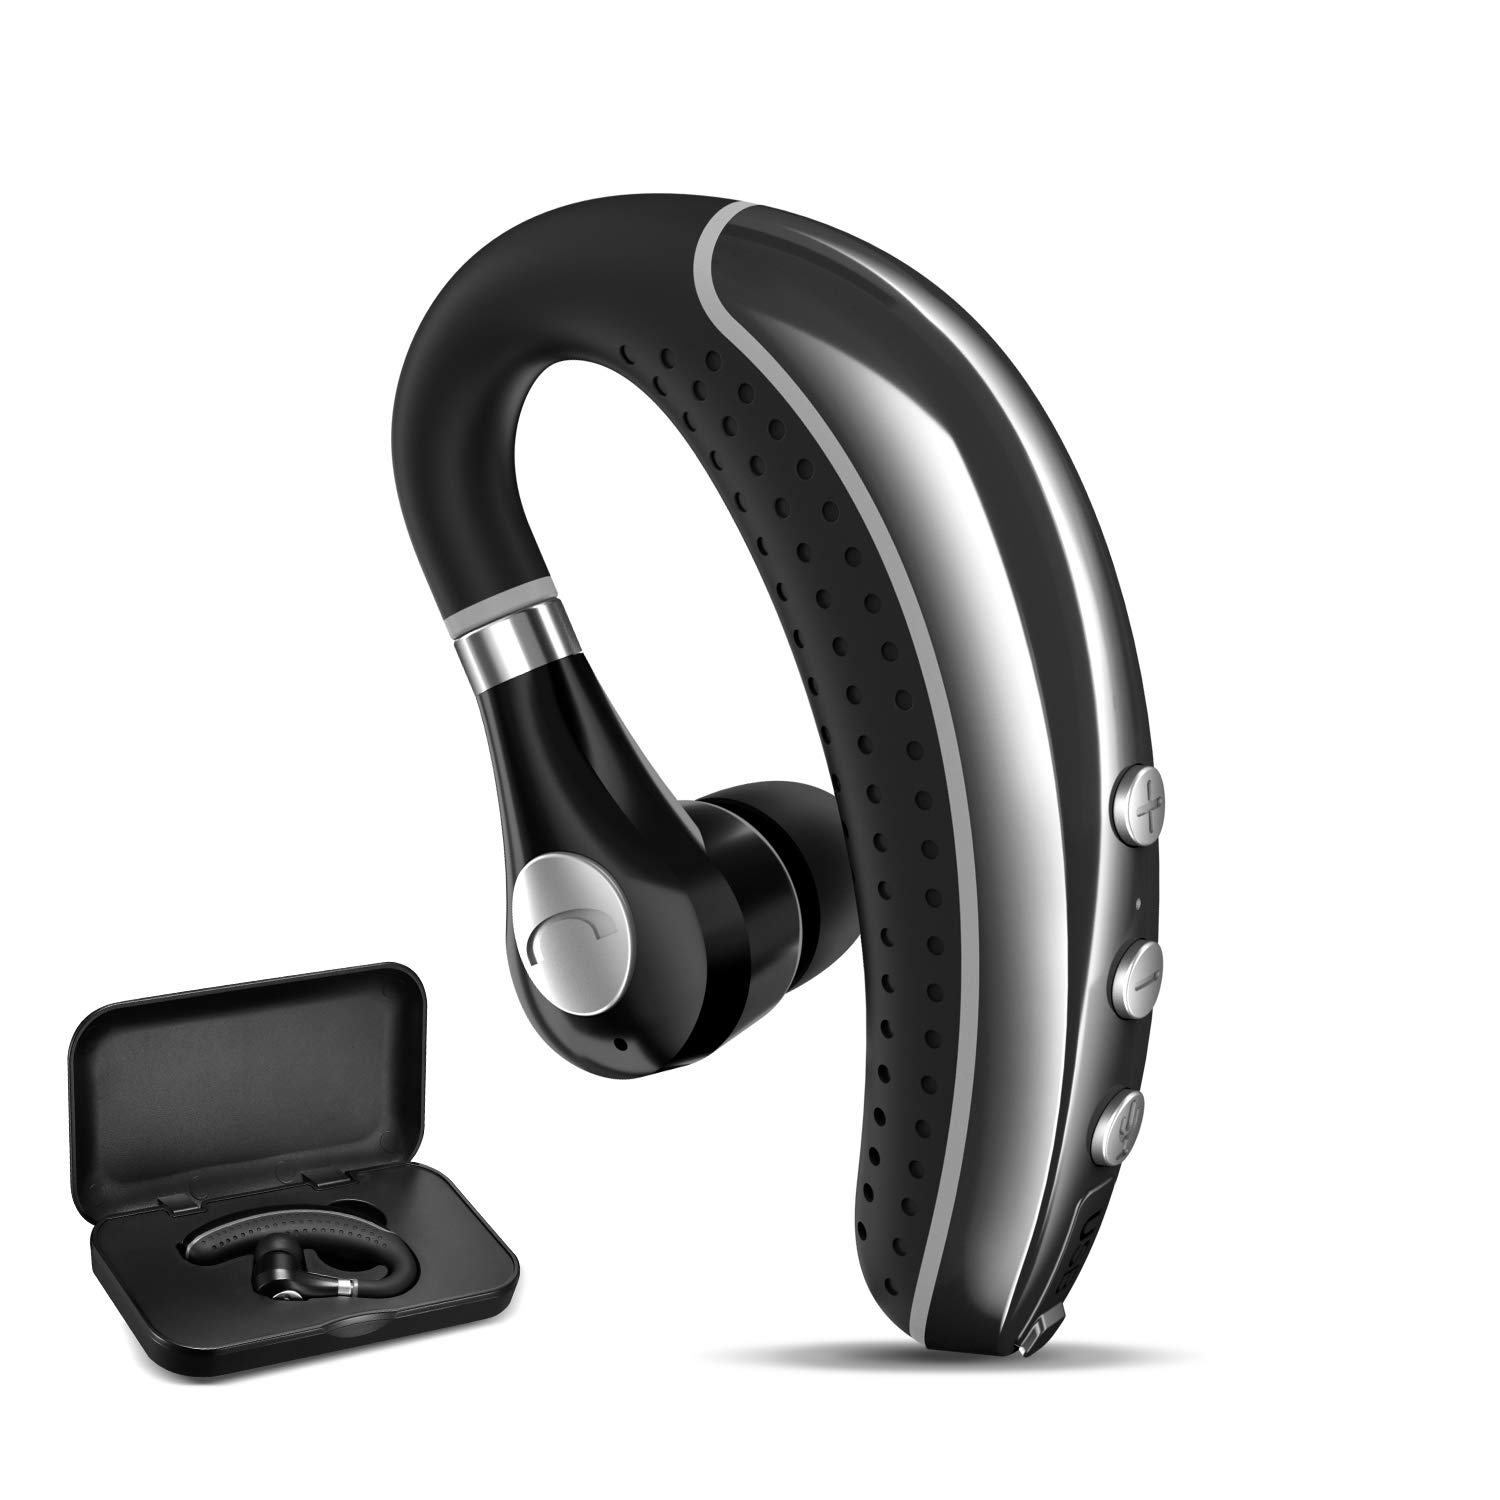 COMEXION Bluetooth Headset, Wireless Business Bluetooth Earpiece with Mic, Compatible Cell Phonesfor Driving/Meeting/Listening by COMEXION